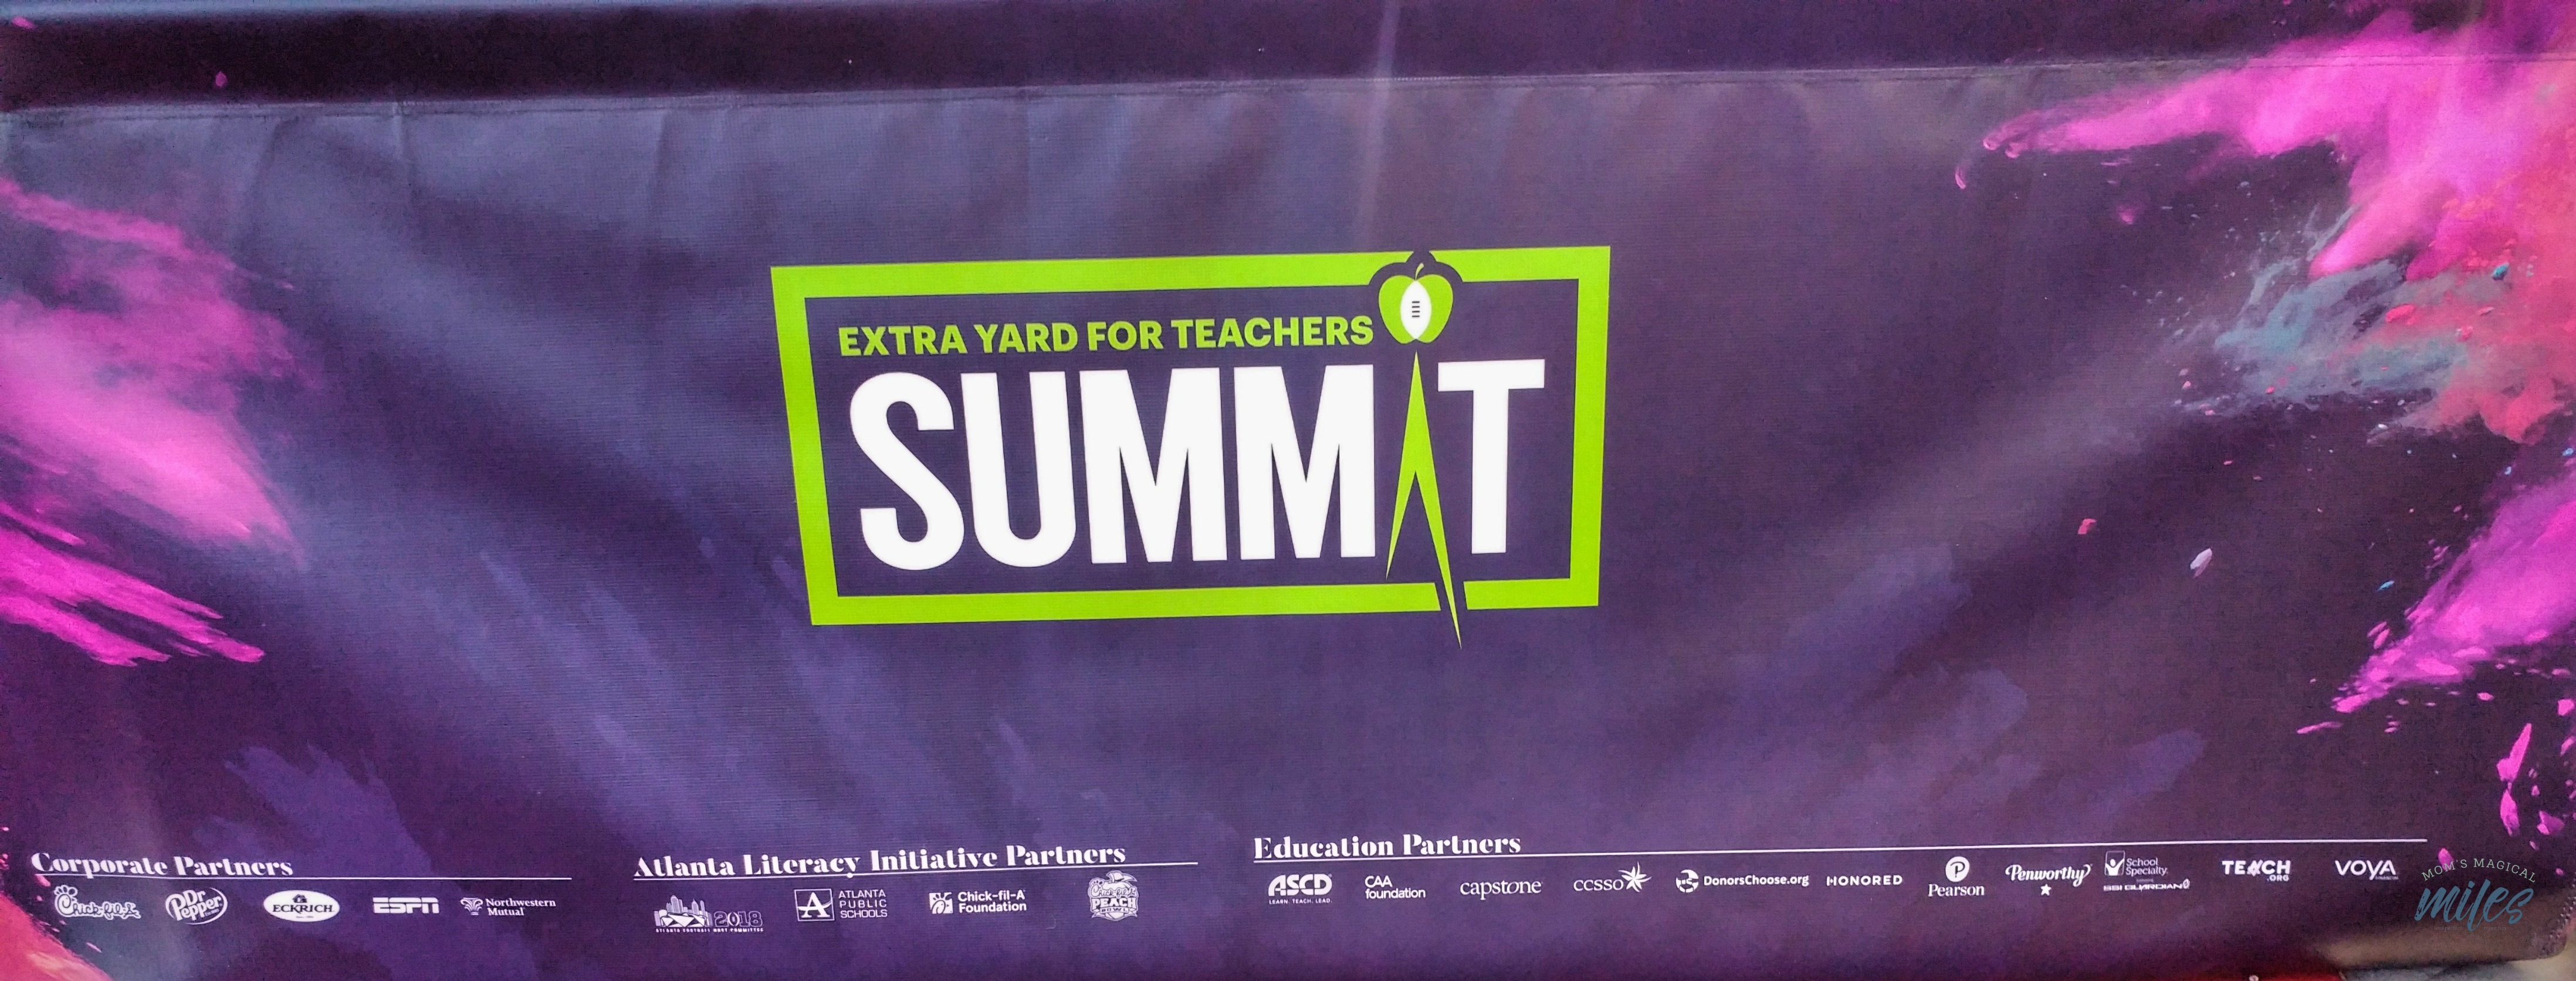 The Extra Yard for Teachers Summit is an uplifting celebration of our teacher heroes! The event is coordinated through the College Football Playoff Foundation.